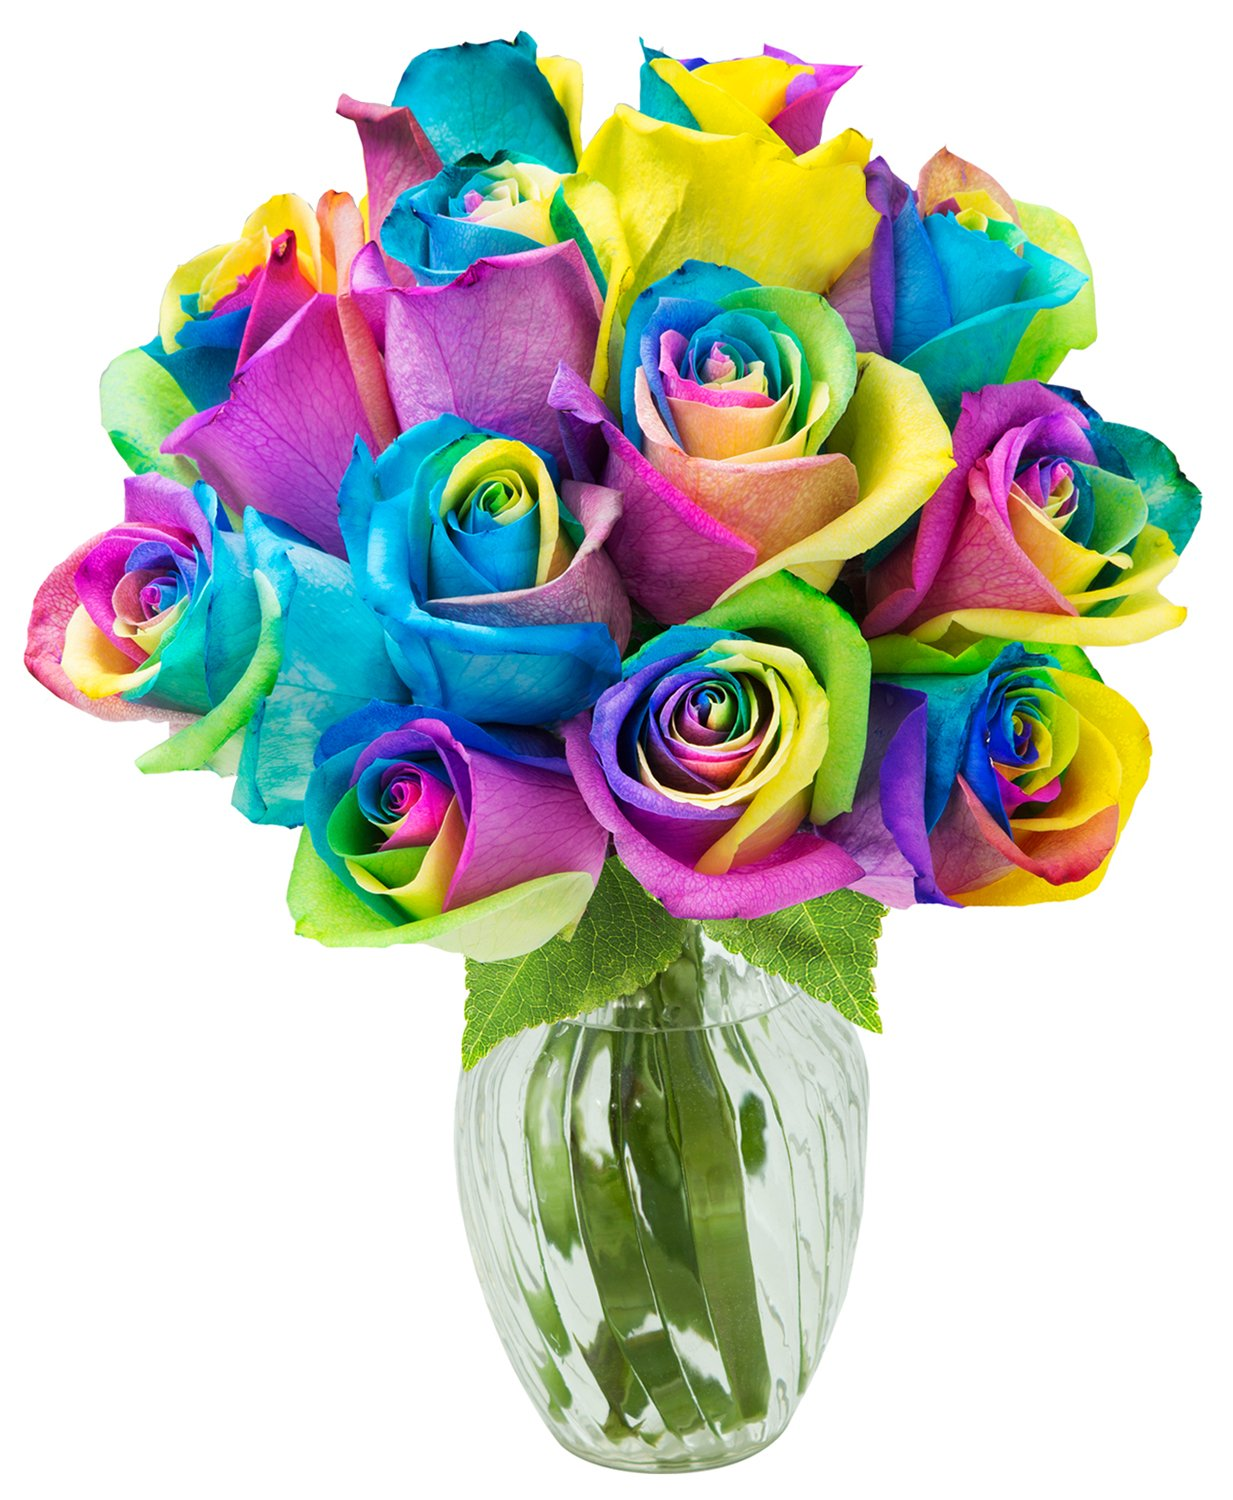 KaBloom Bouquet of 12 Fresh Rainbow Roses (Farm-Fresh, Long-Stem) with Vase by KaBloom